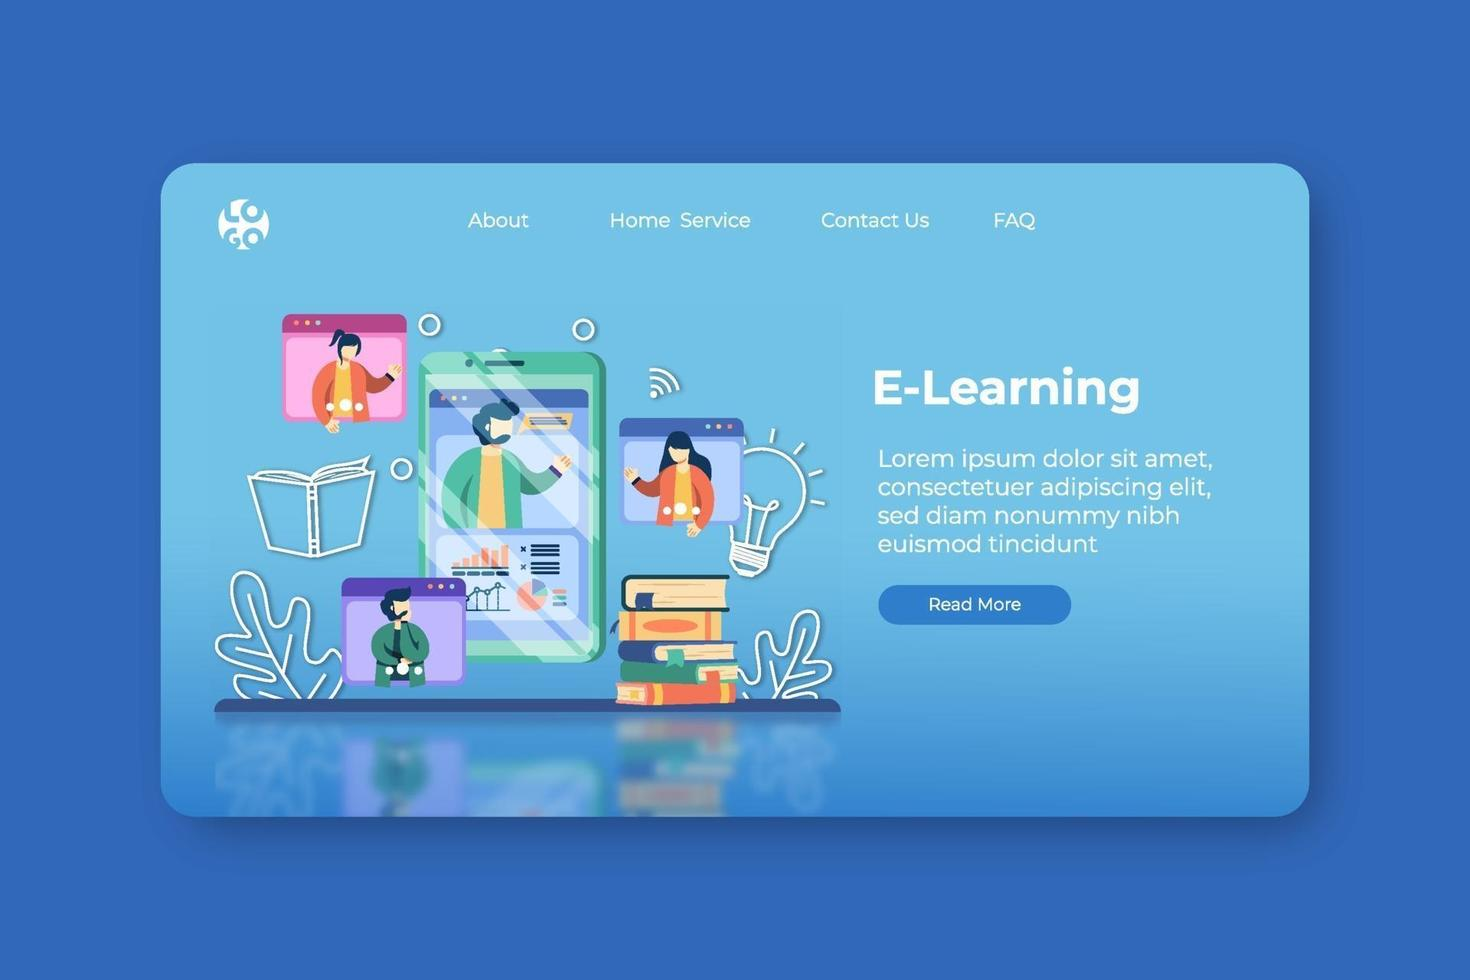 Modern Flat Design Vector Illustration. E-Learning Landing Page and Web Banner Template. Digital Education, Online Teaching, Distance Education, Home Schooling, Learn during quarantine